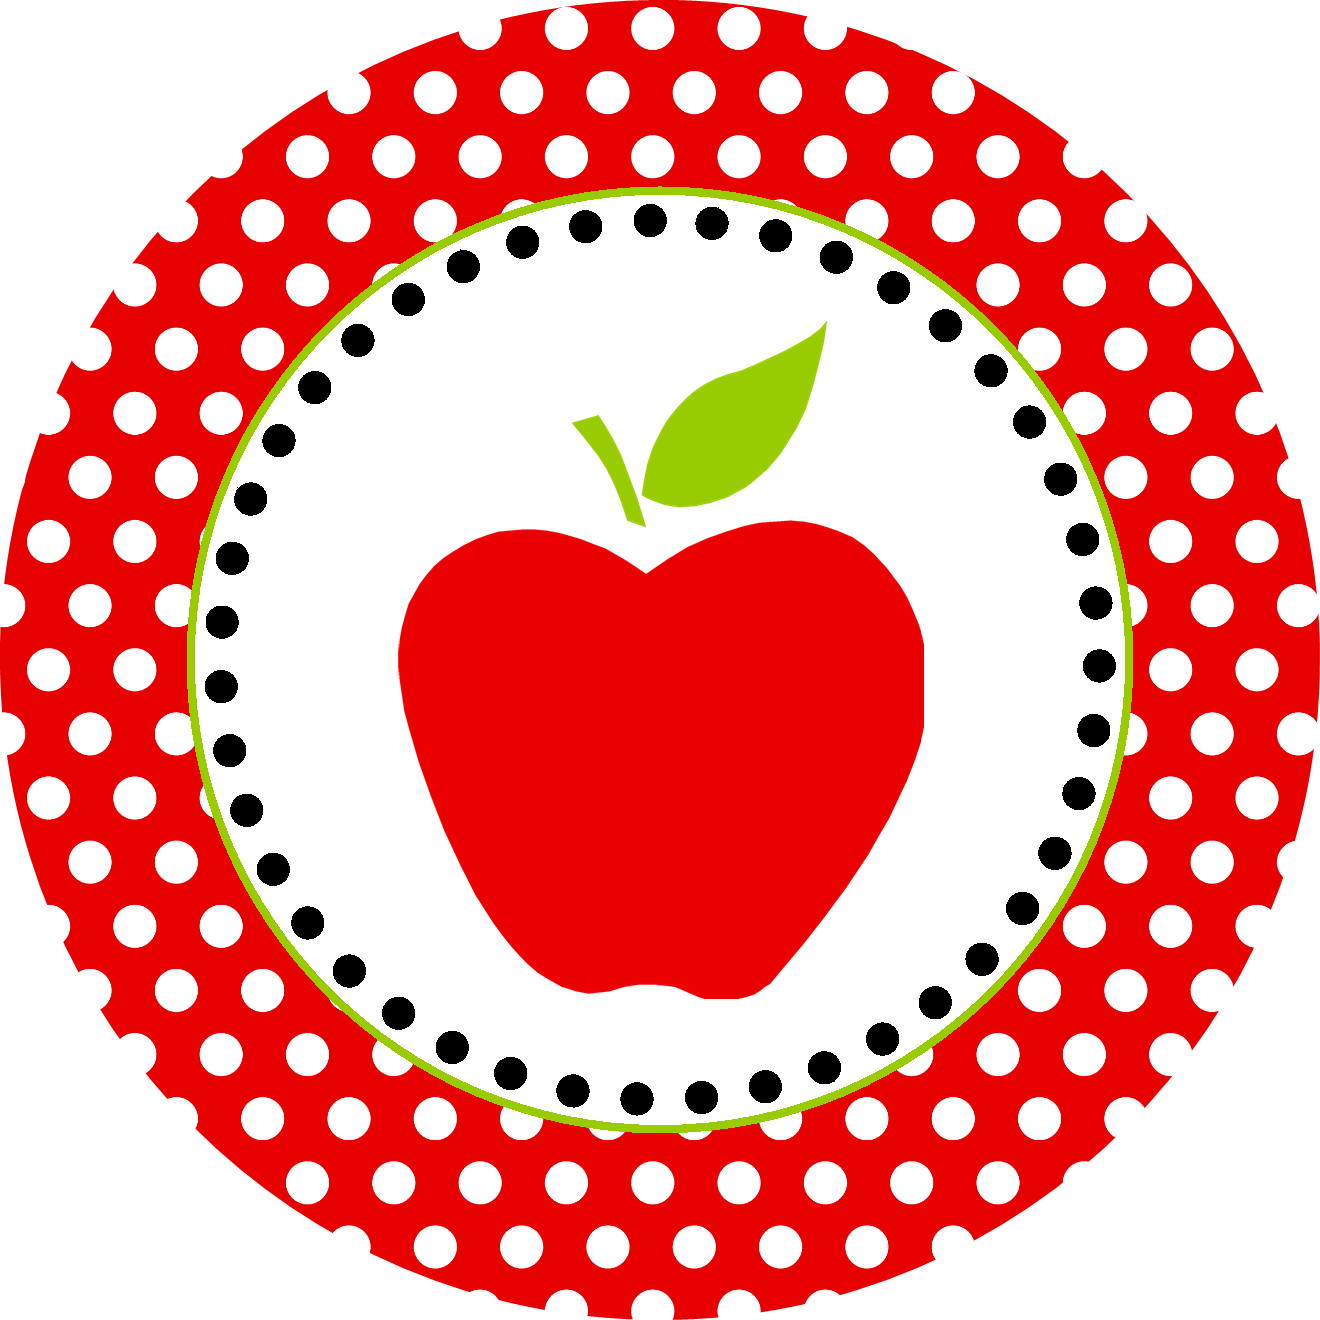 1 teacher apple clipart black and white stock Teacher Apple Clipart #1 | 111 Teacher Apple Clipart | Tiny Clipart black and white stock